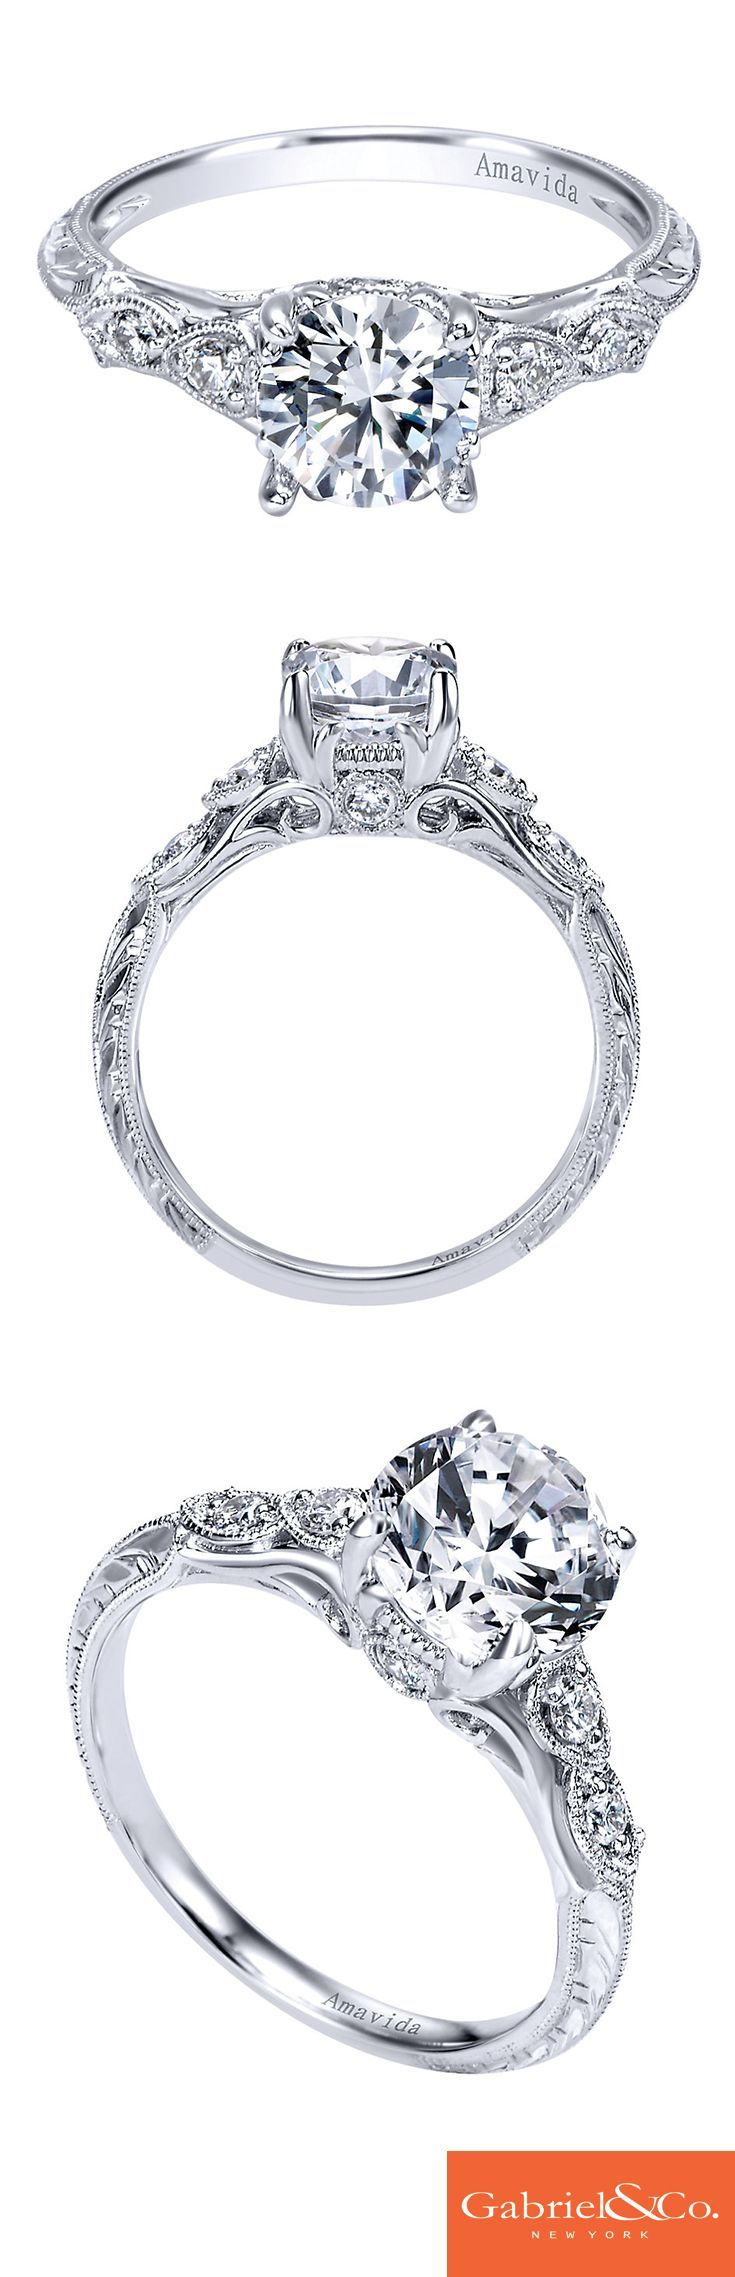 Express the many intricate and beautiful details of your love in a stunning engagement ring. This Amavida Engagement Ring by Gabriel & Co. is a platinum diamond victorian straight engagement ring is absolutely flawless. Present the one your love with this stunning engagement ring or customize your own on our website.